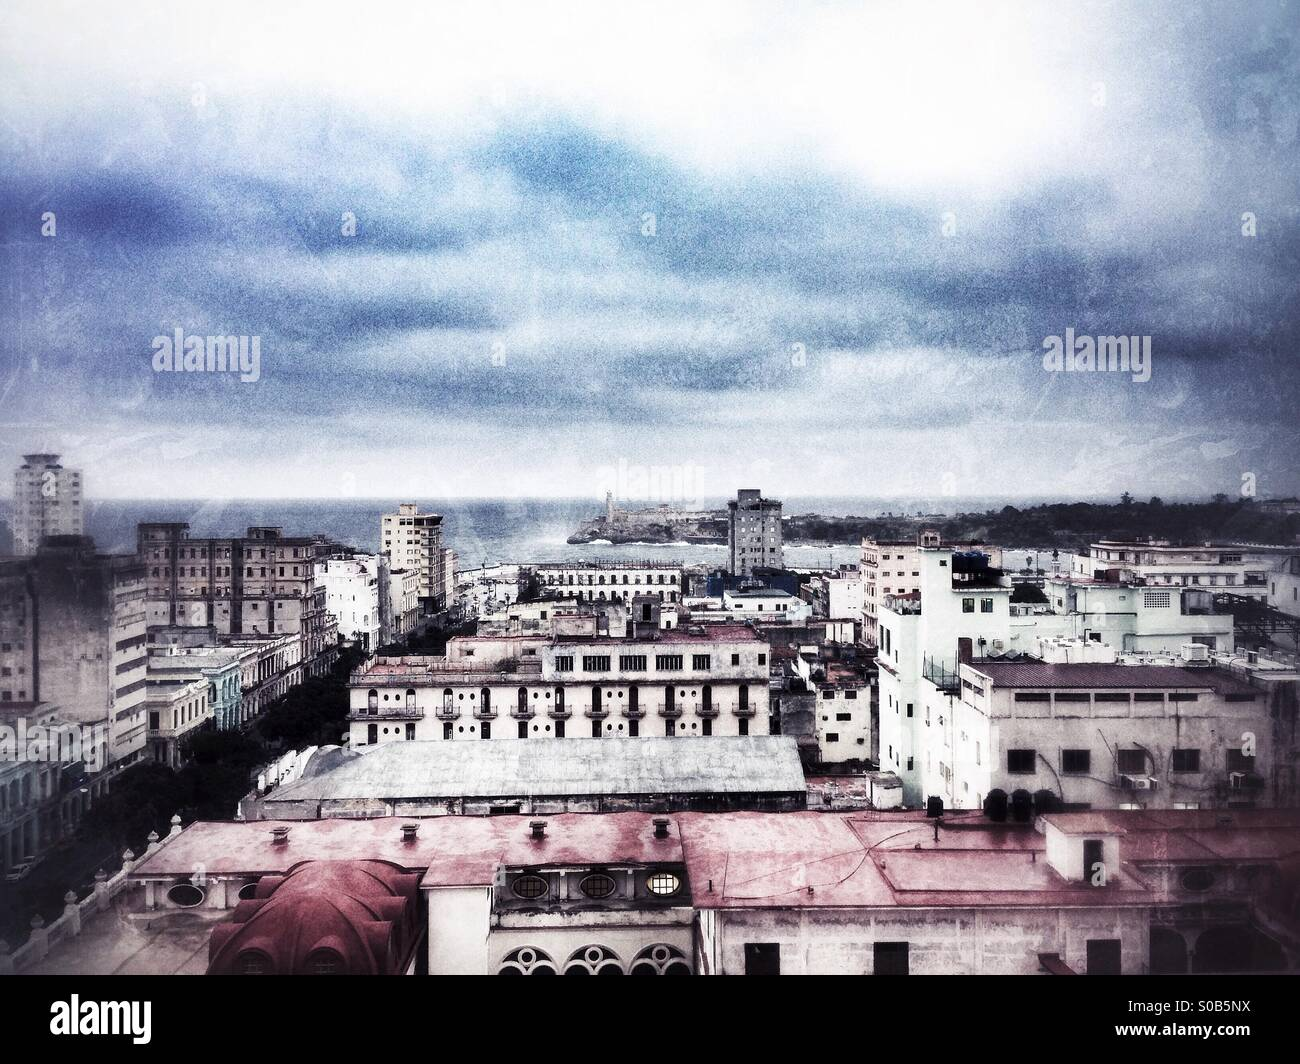 Havana cityscape Looking out from the hotel Sevilla, high angle view looking out towards El Morro Lighthouse. Cuba, - Stock Image